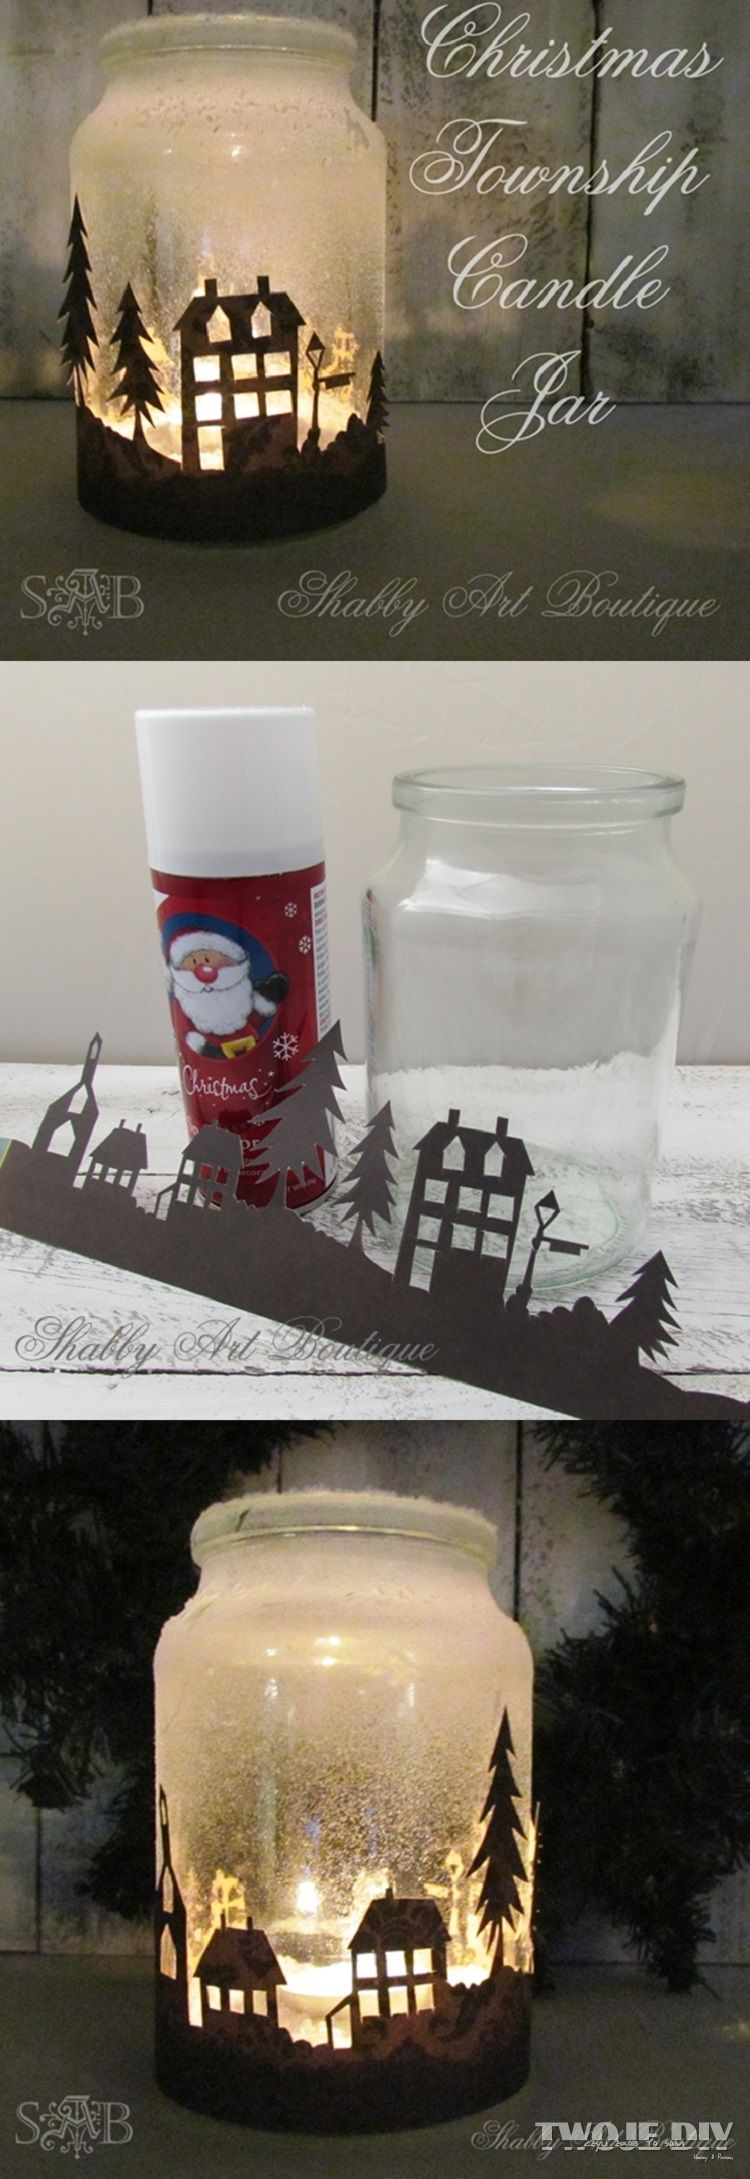 Christmas Township Candle Jar: Quick and easy candle jar that will look amazing when illuminated at night. complete directions.